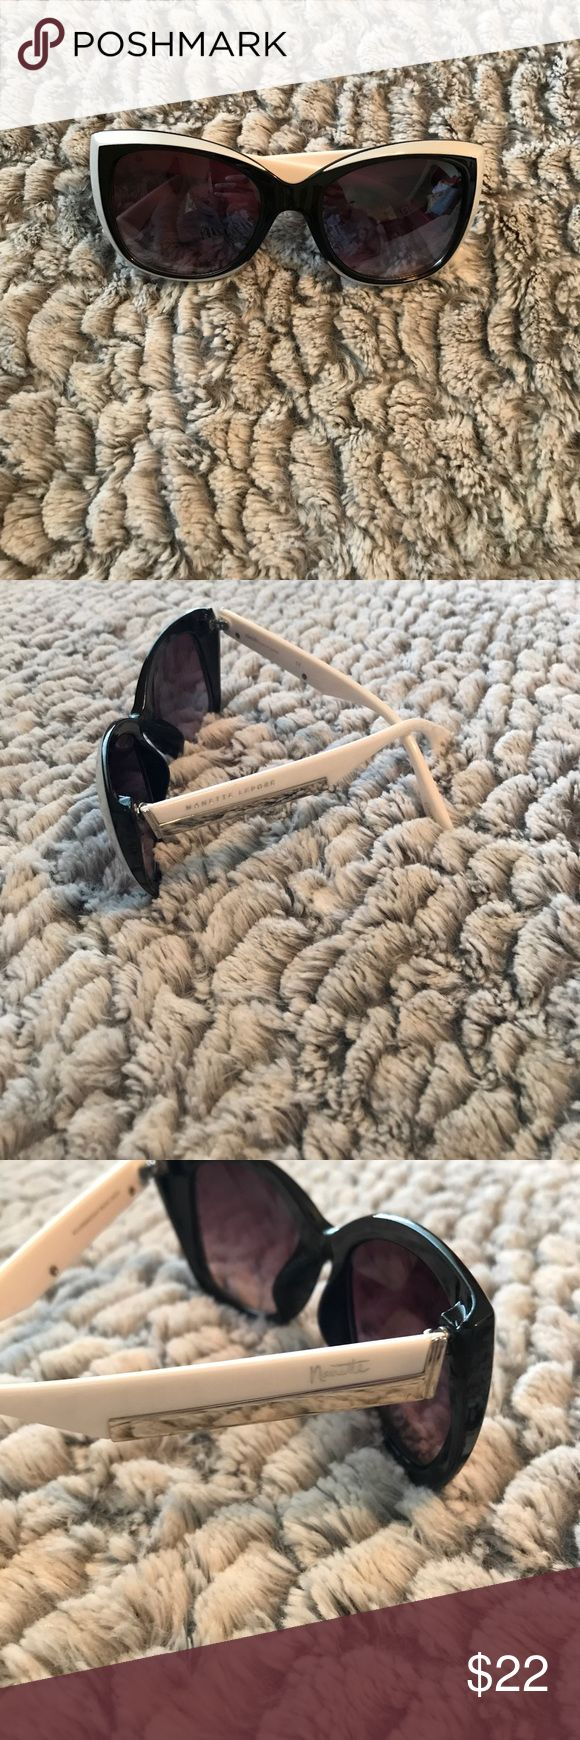 Nanette Lepore Sunglasses Never worn Nanette Lepore sunglasses. Purchased at TJ Maxx without a case; will ship in soft clothe case. Fun pair, well made. Comes from smoke and pet free home. Nanette Lepore Accessories Sunglasses